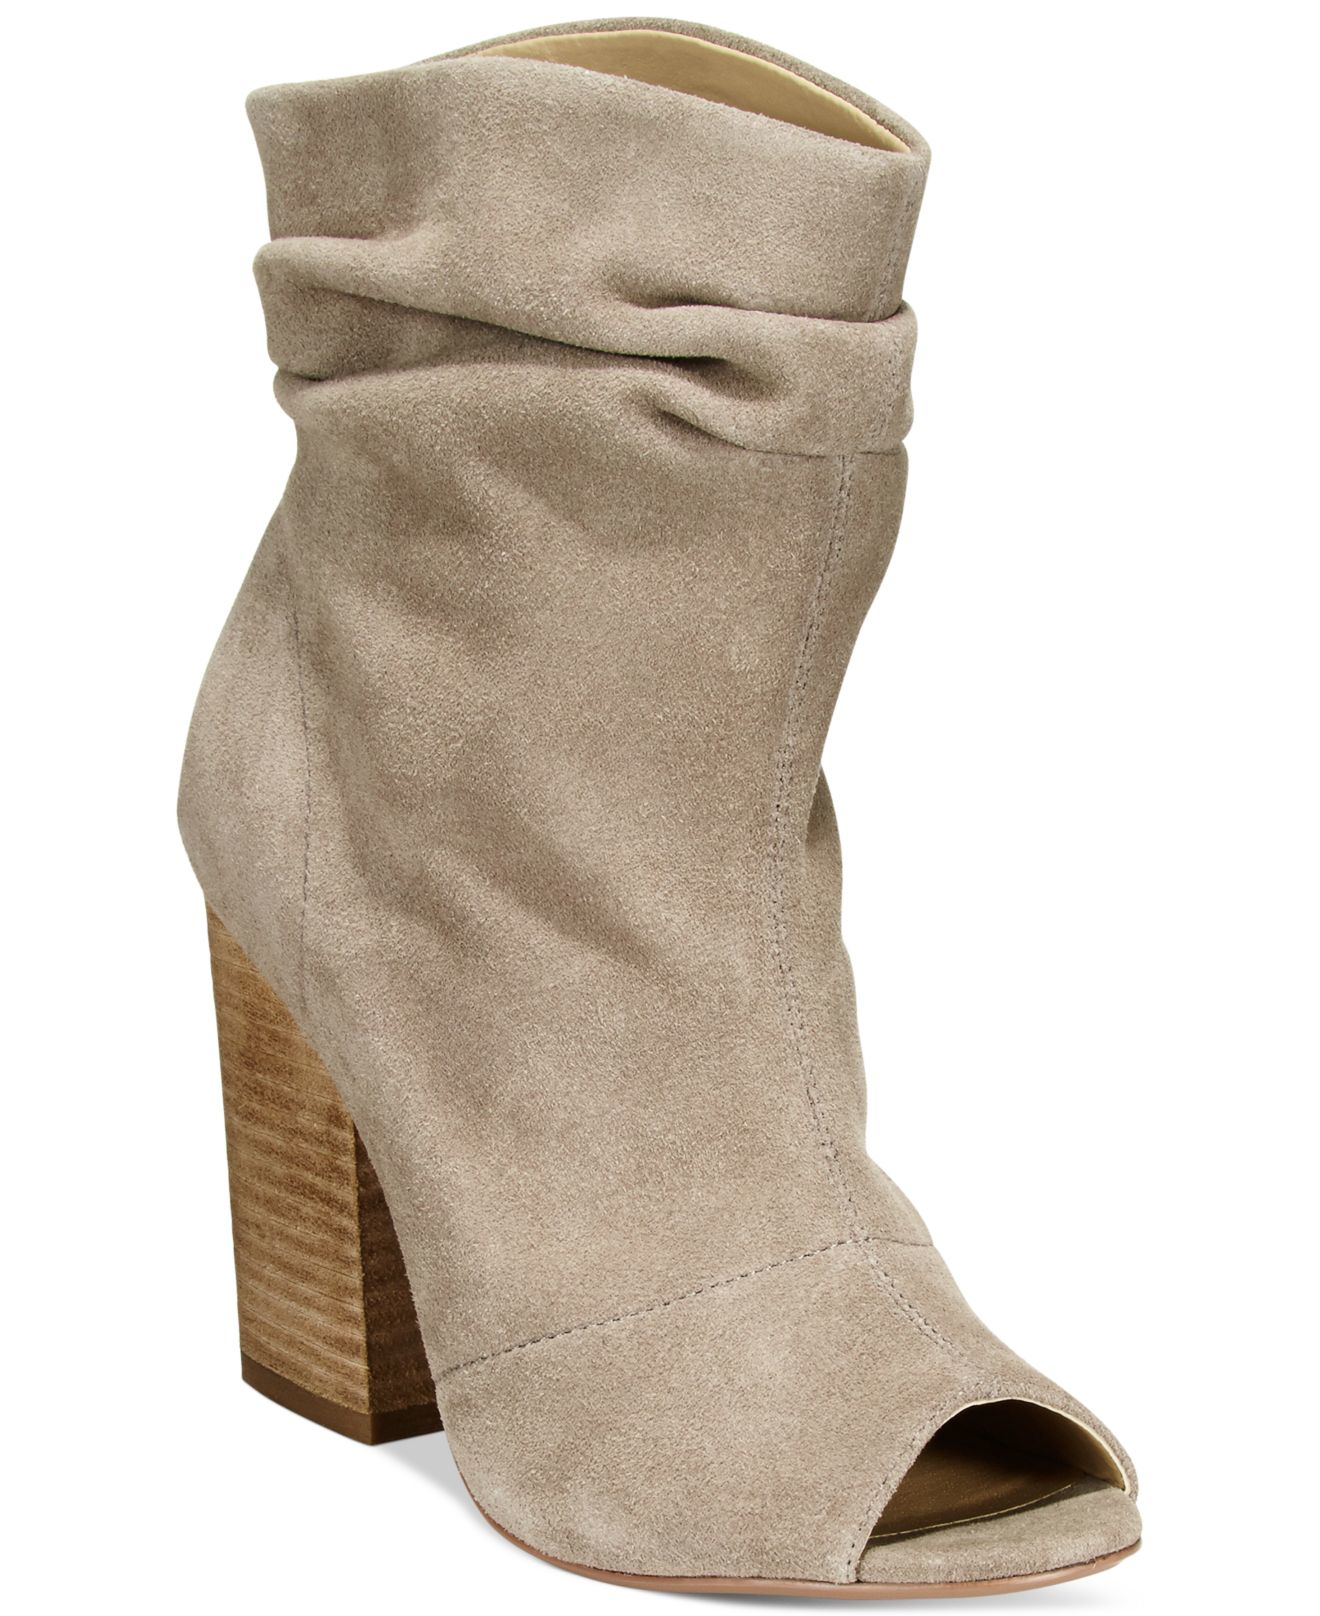 Chinese Laundry Break Up Peep Toe Suede Slouchy Booties In